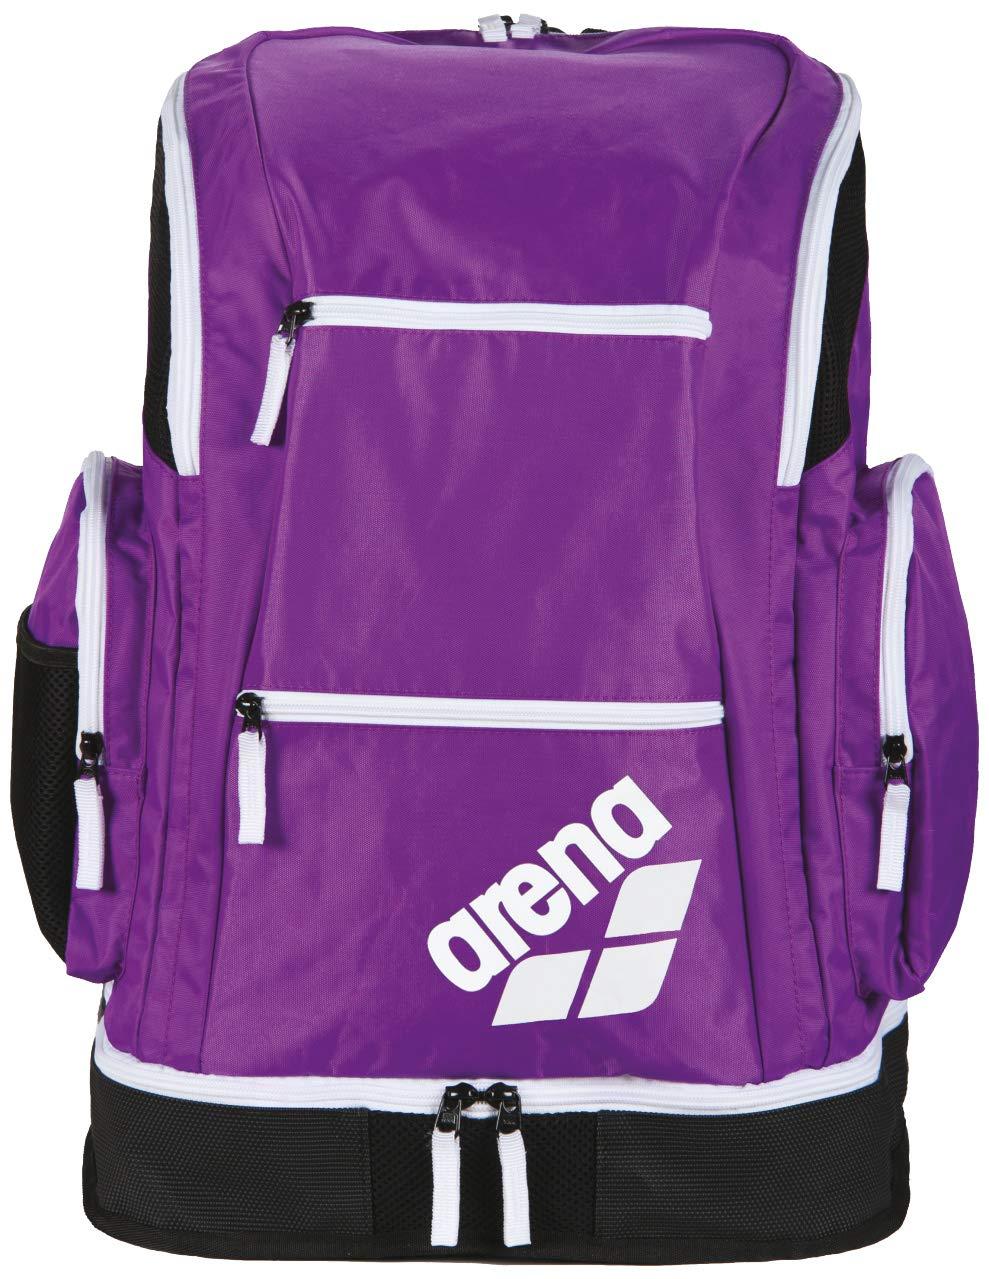 d8929fea763 Amazon.com: arena Spiky 2 Large Swim Backpack, Purple/White/Fluo Green:  Sports & Outdoors